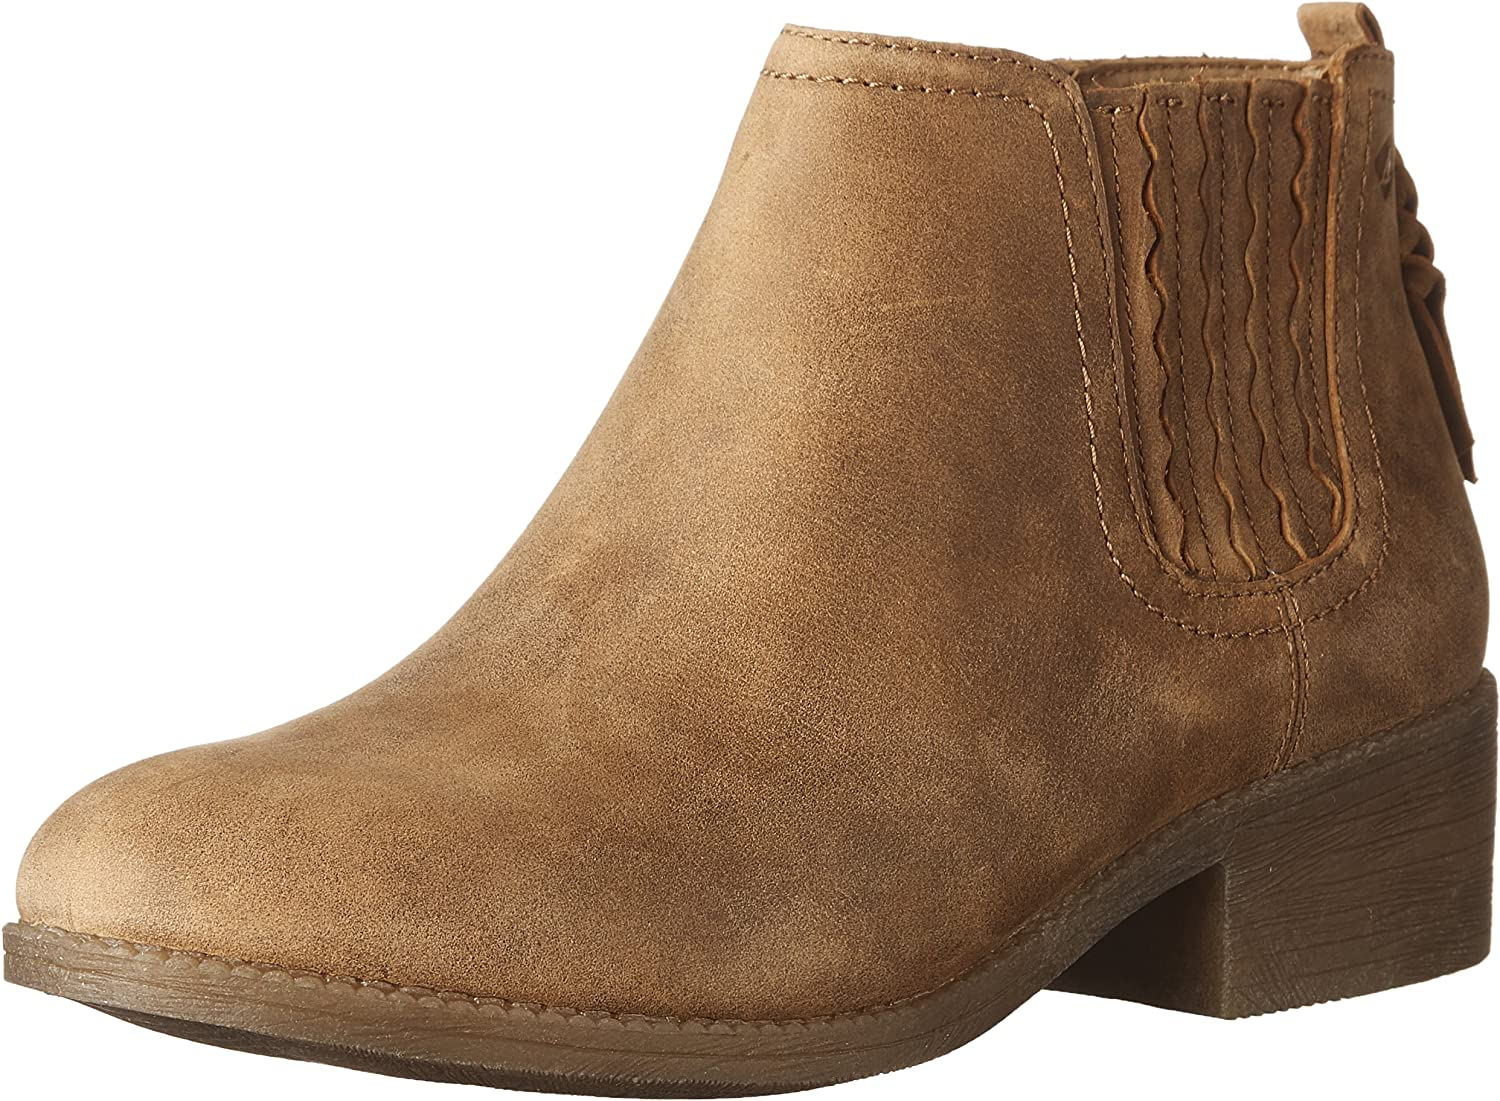 Sperry Womens STS80427 Chelsea Boots